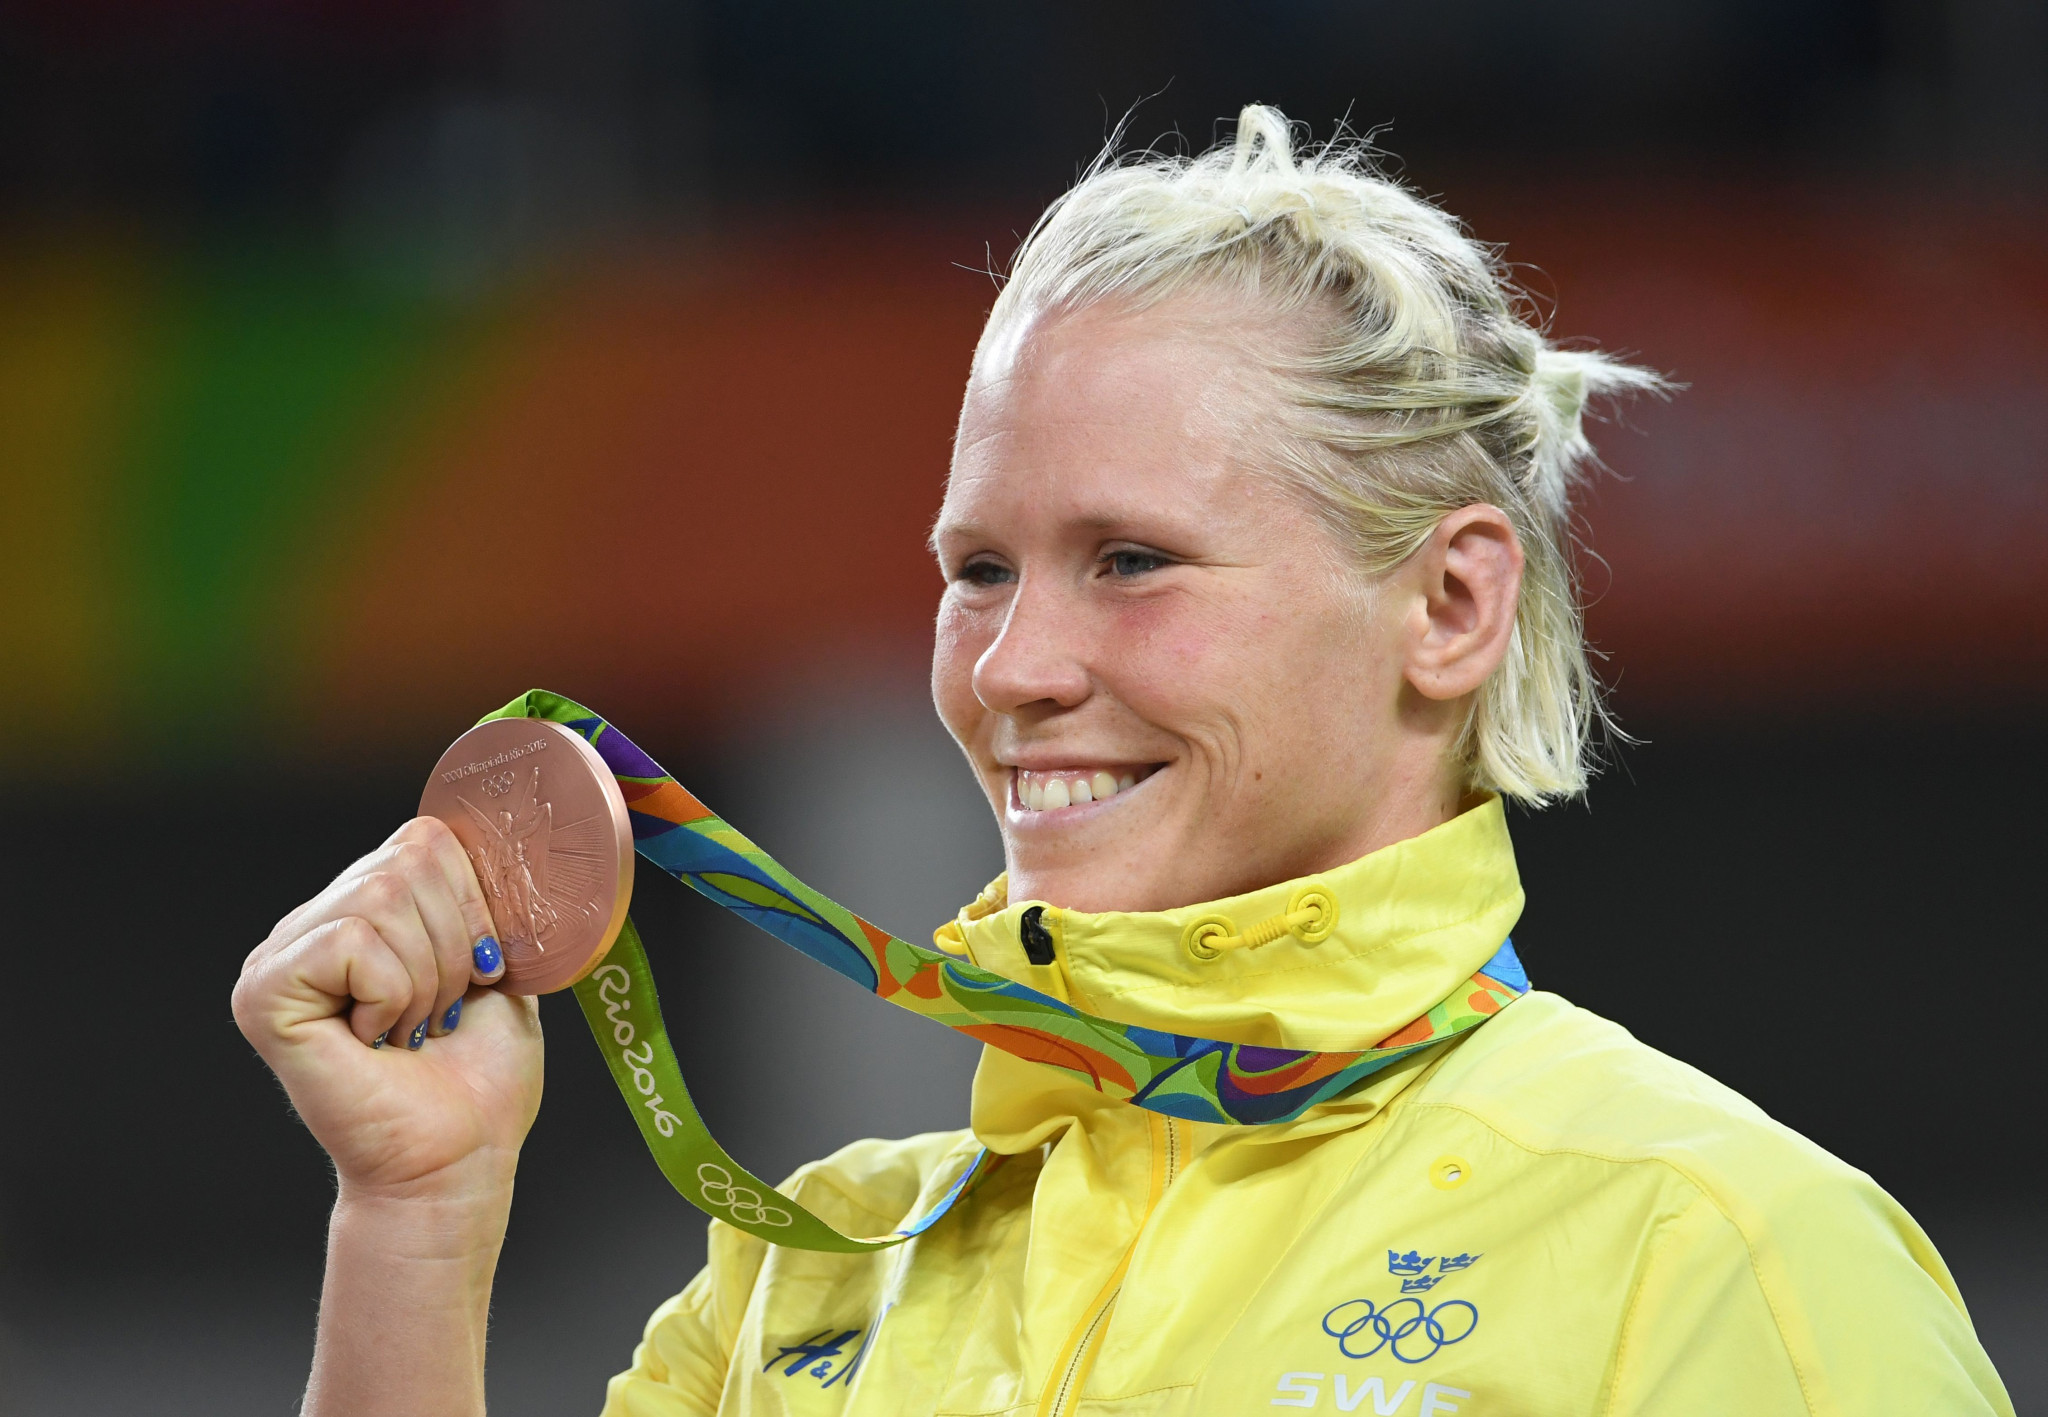 Olympic medallist Fransson removed from Swedish team after positive test confirmed